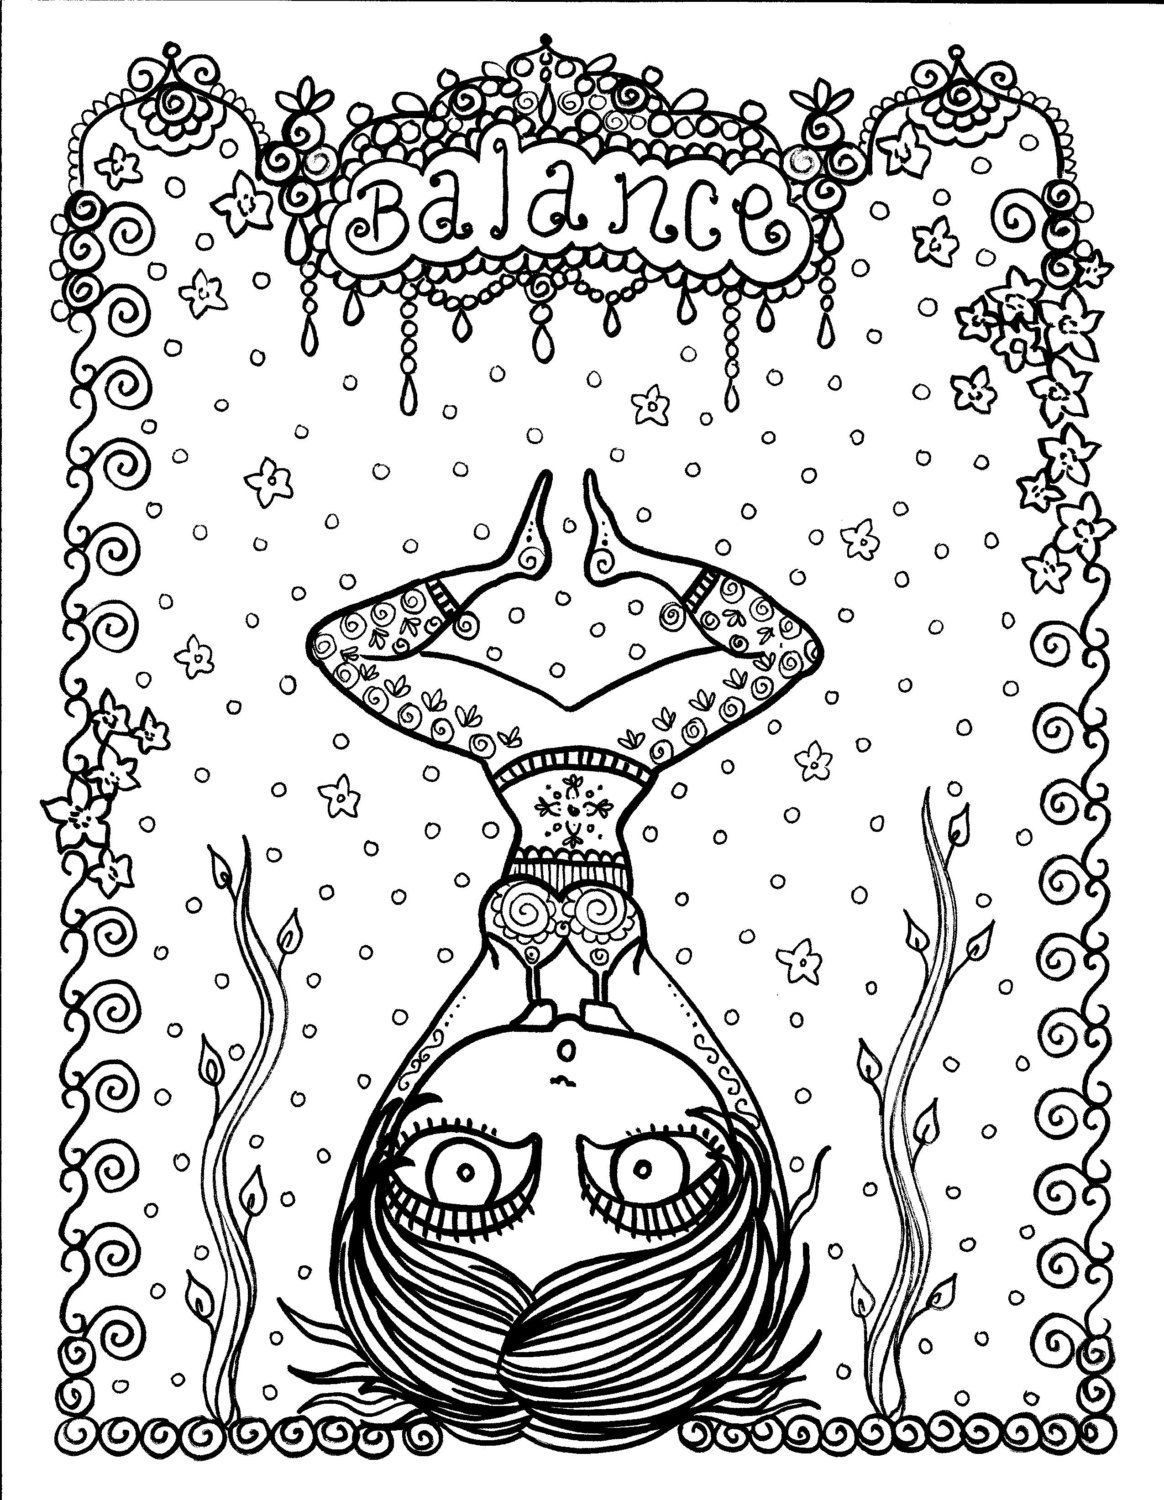 The Big Yoga Coloring Book You Be The Artist Color Zen Om Etsy Yoga Coloring Book Coloring Books Coloring Pages [ 1500 x 1164 Pixel ]